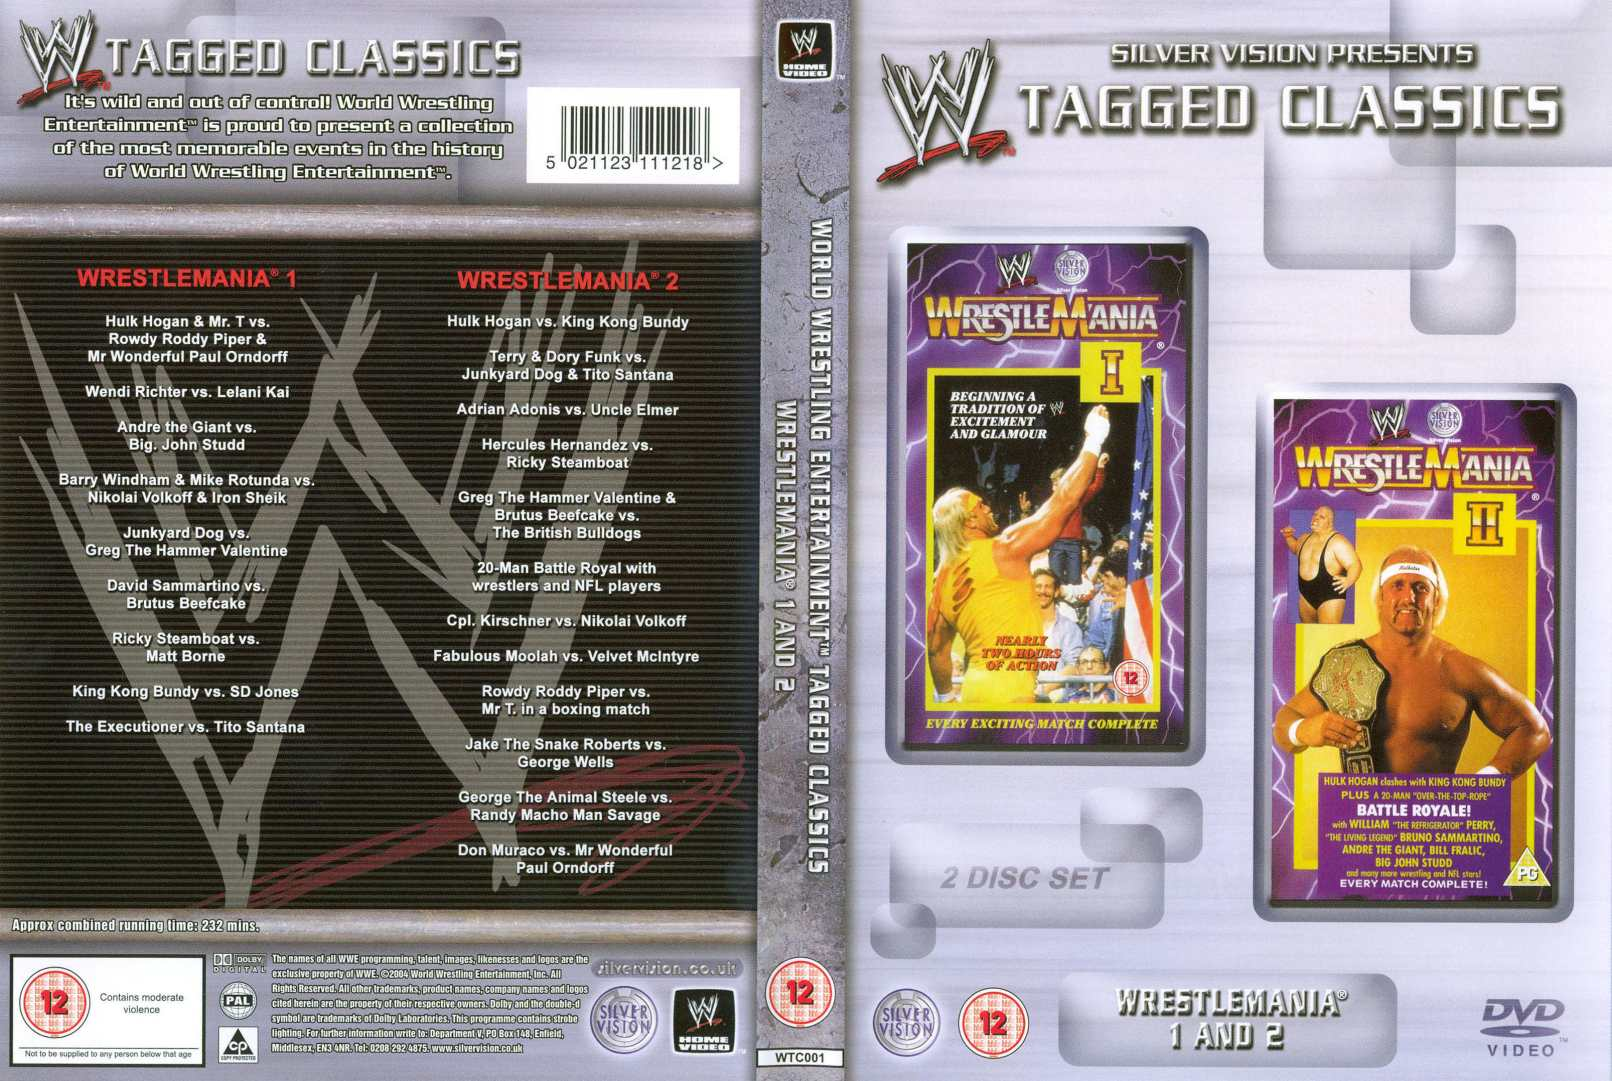 wwe_tagged_classics_-_wrestlemania_1_&_2